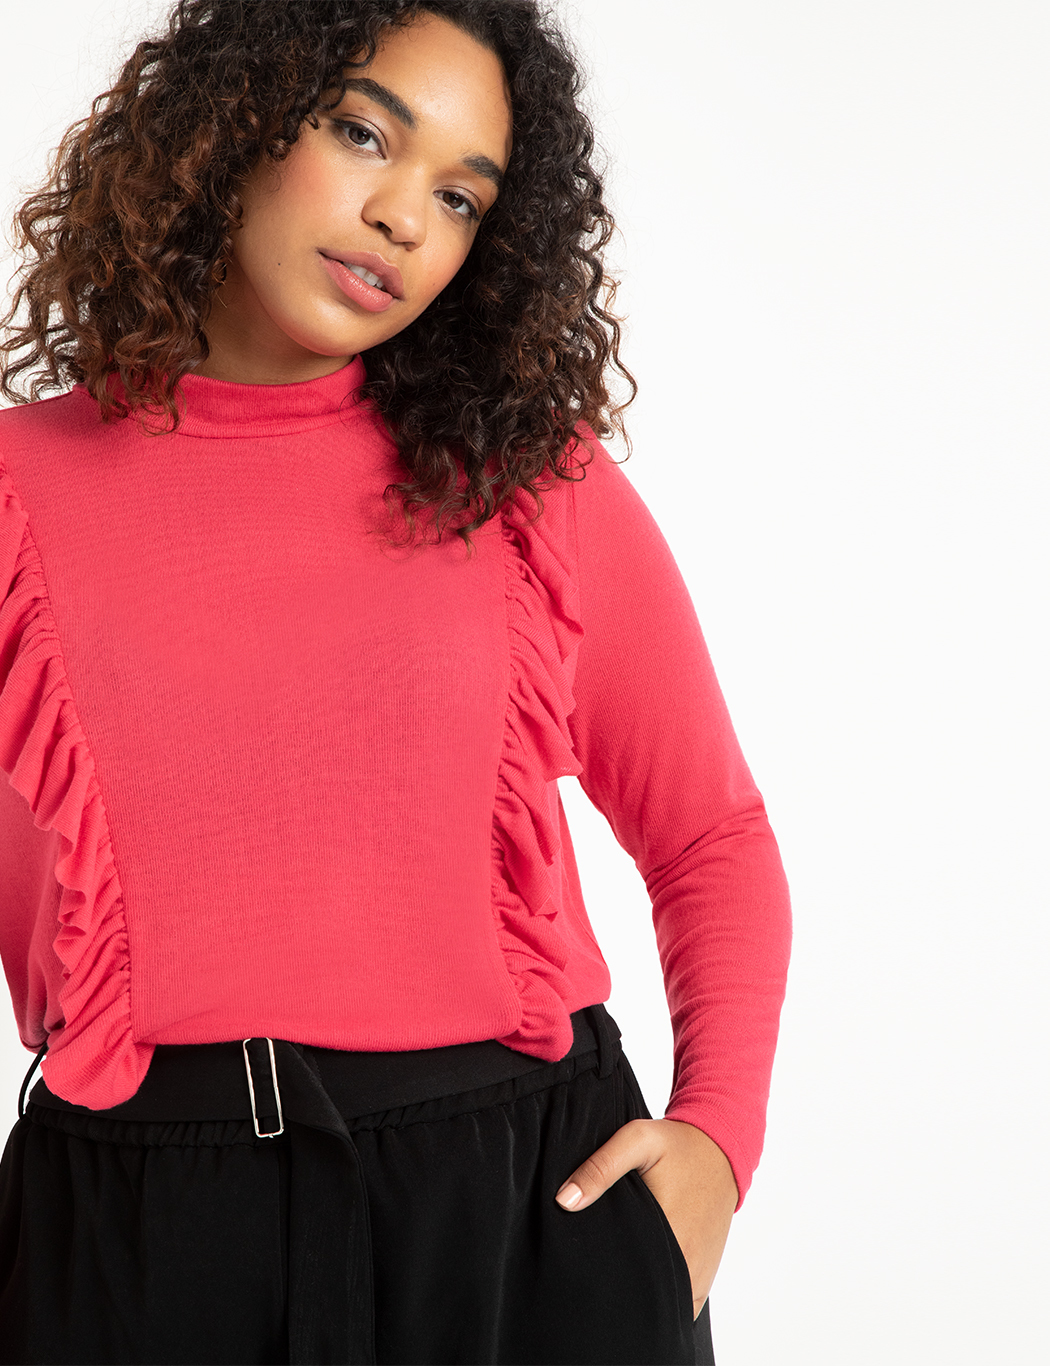 Ruffle Front Mock Neck Top